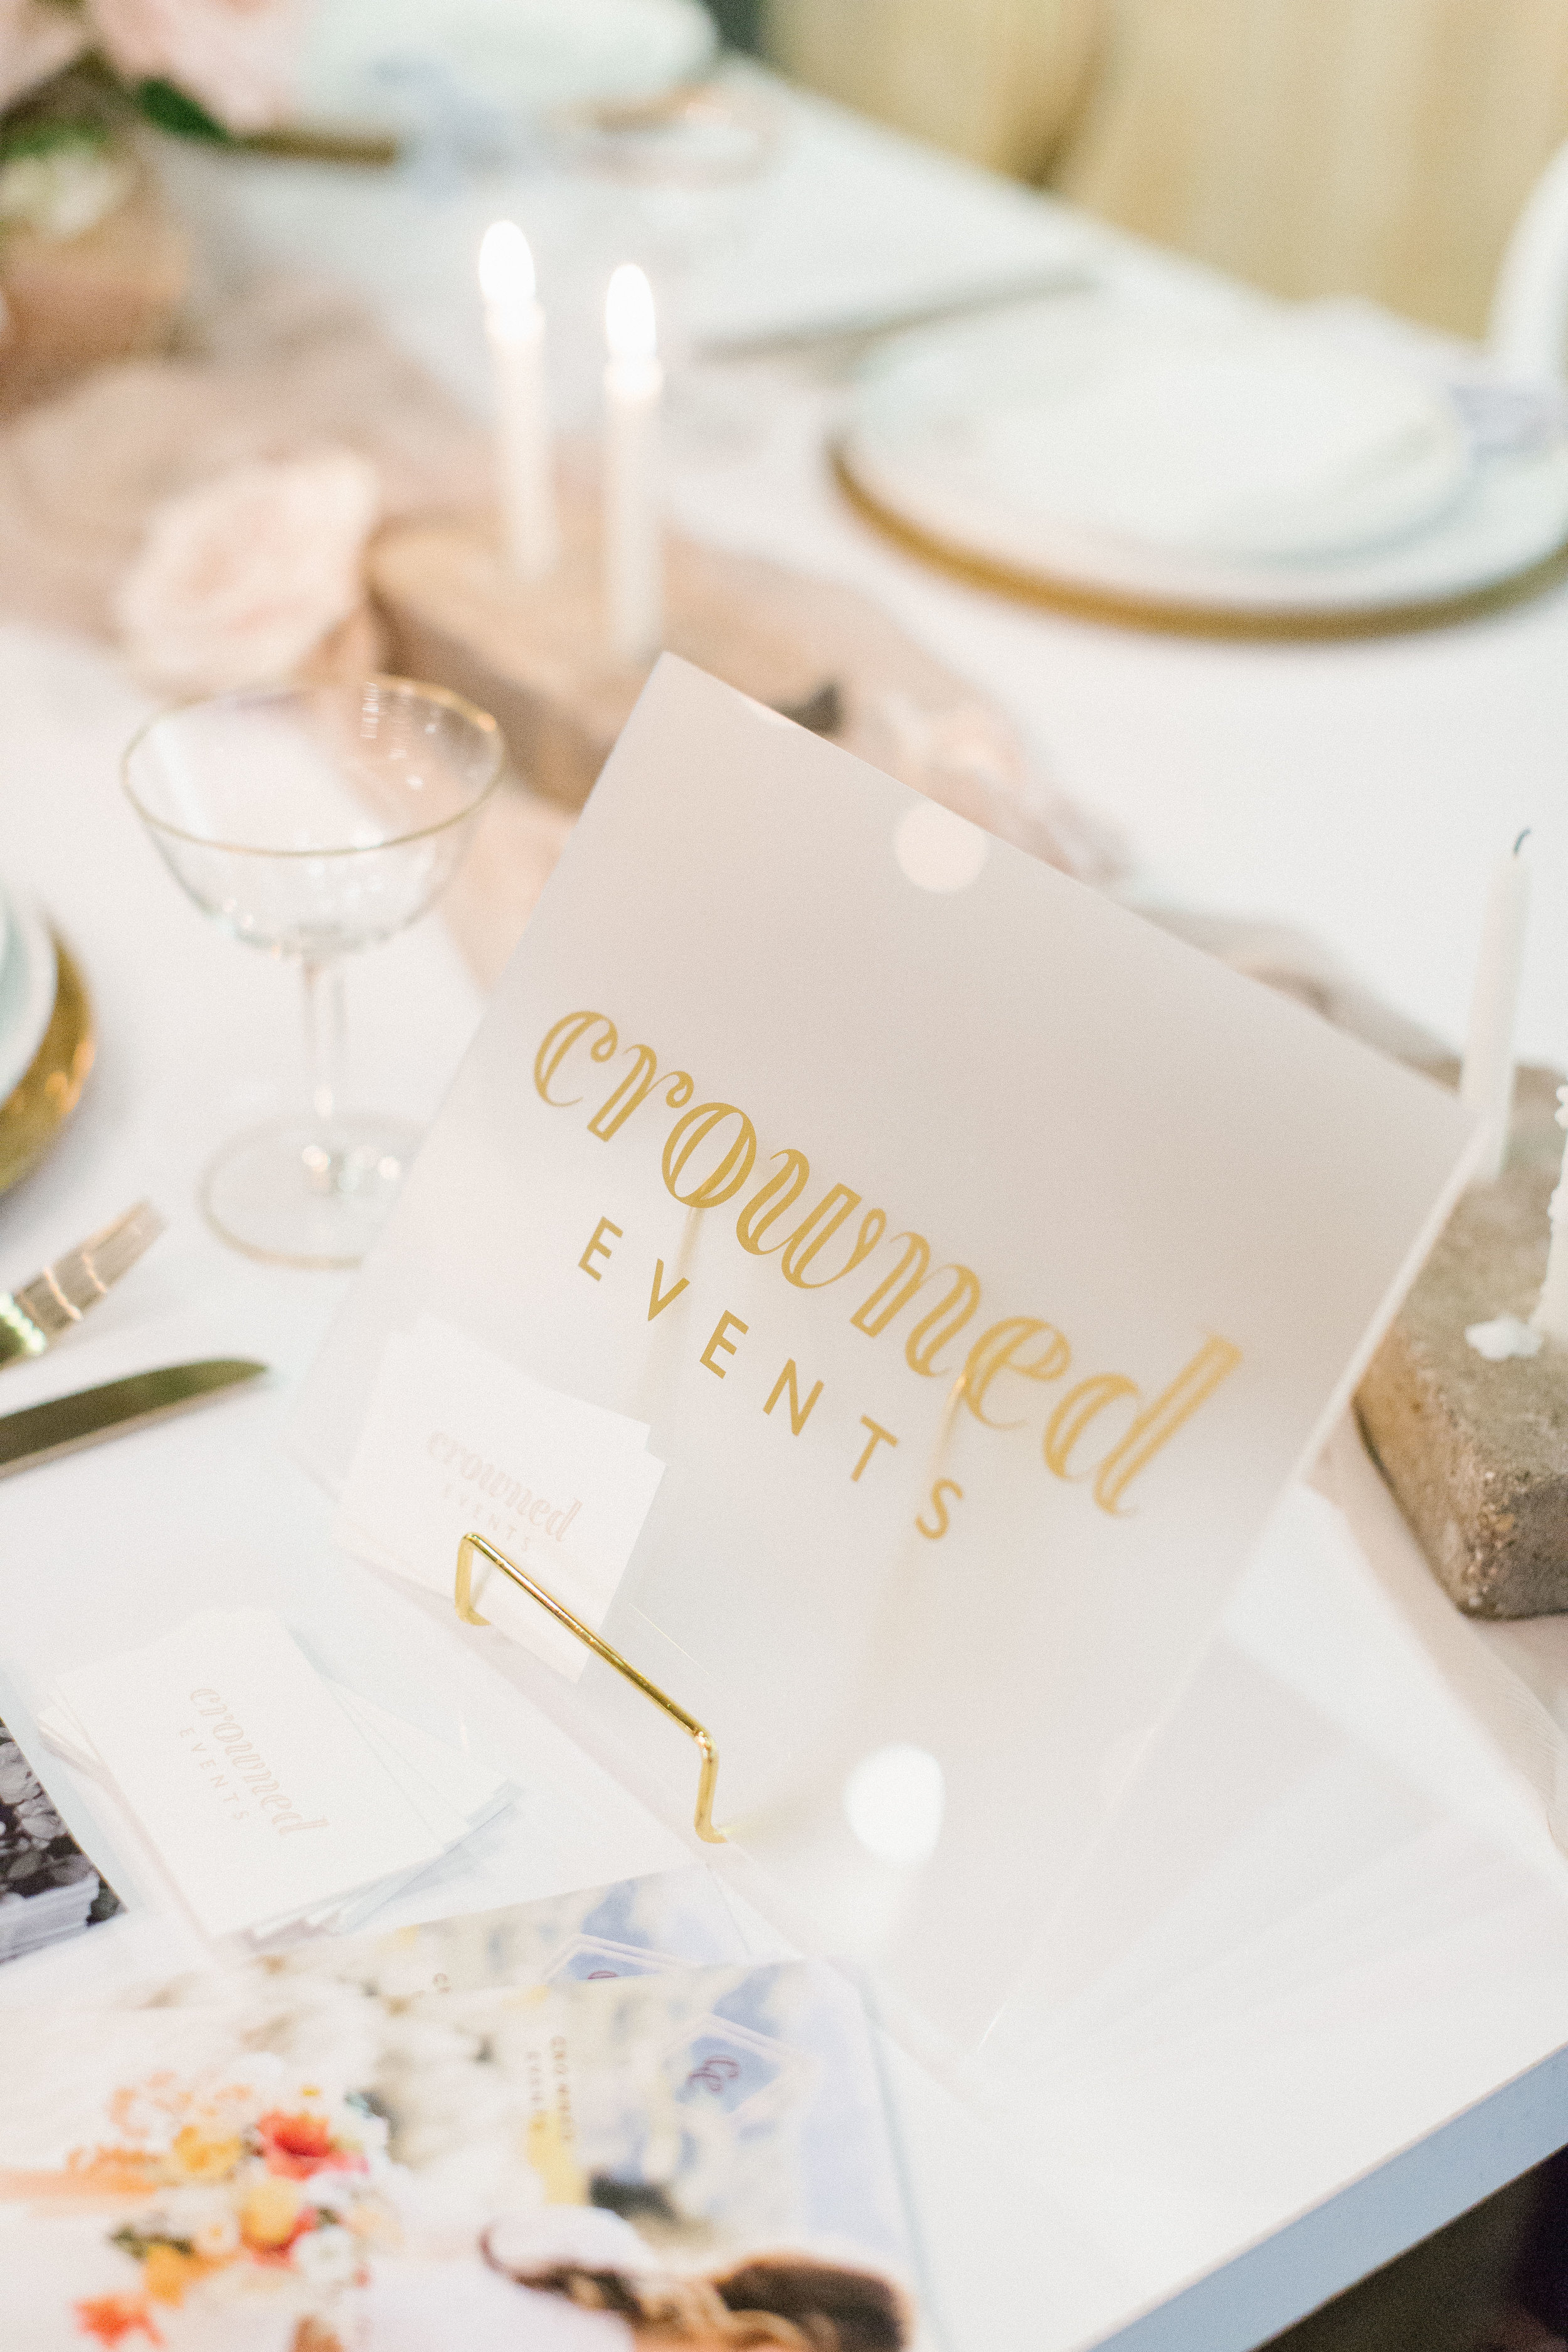 oncegownevent-24.jpg